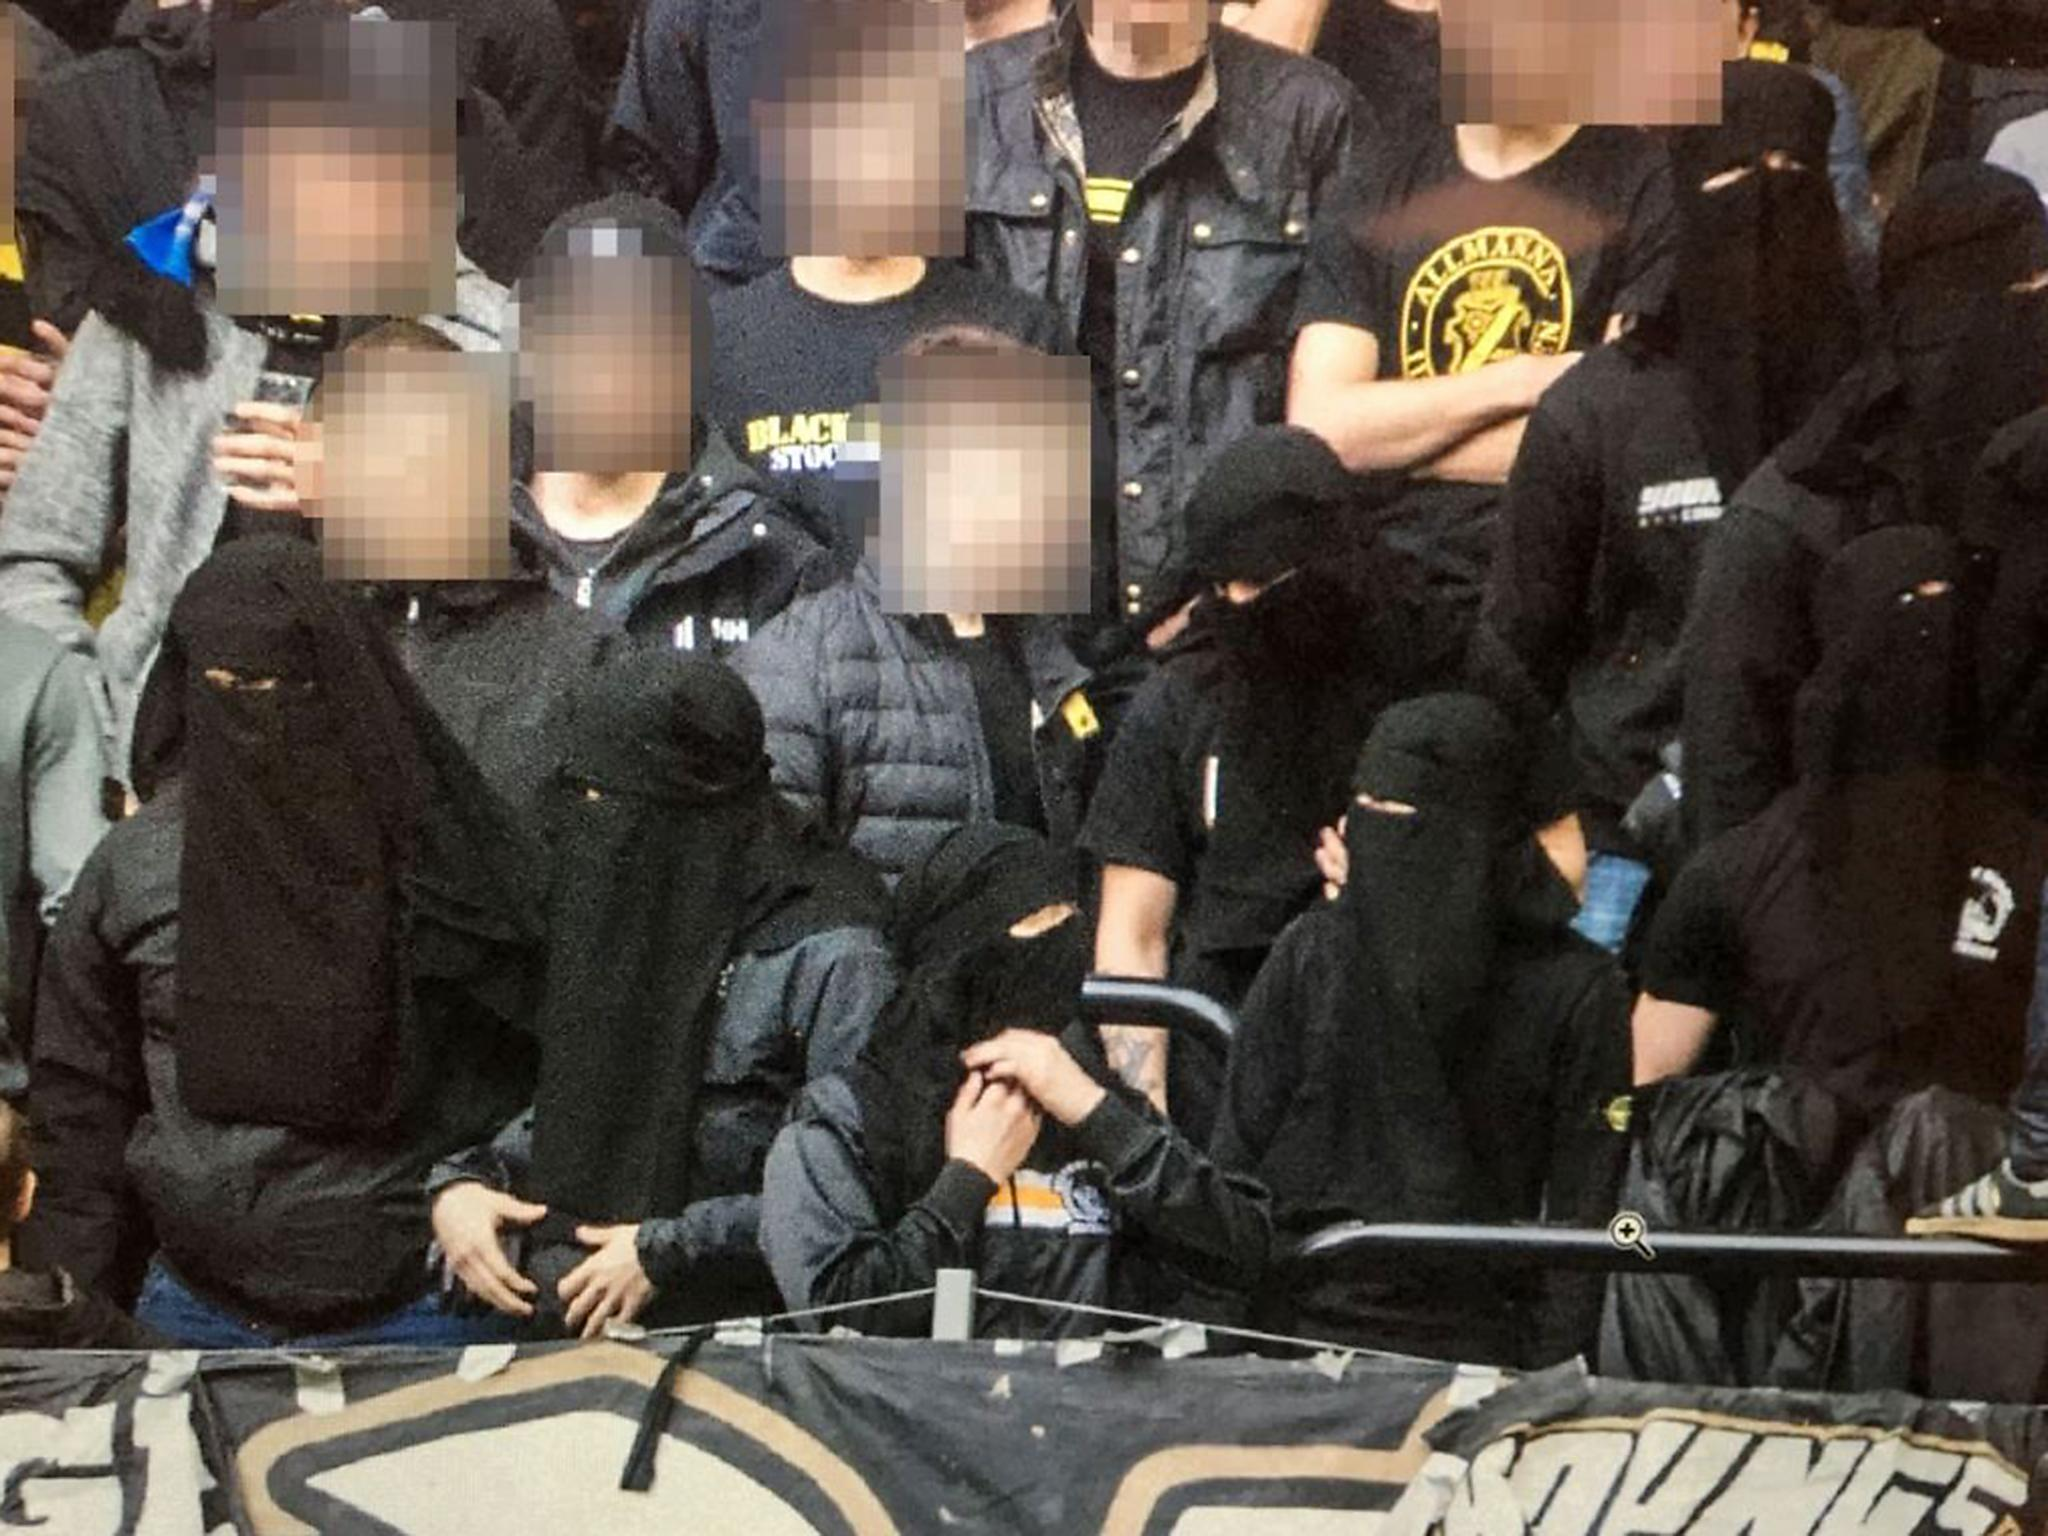 Swedish Football Ultras Wear Niqabs To Get Around Anti Hooligan Law Banning Face Masks The Independent The Independent